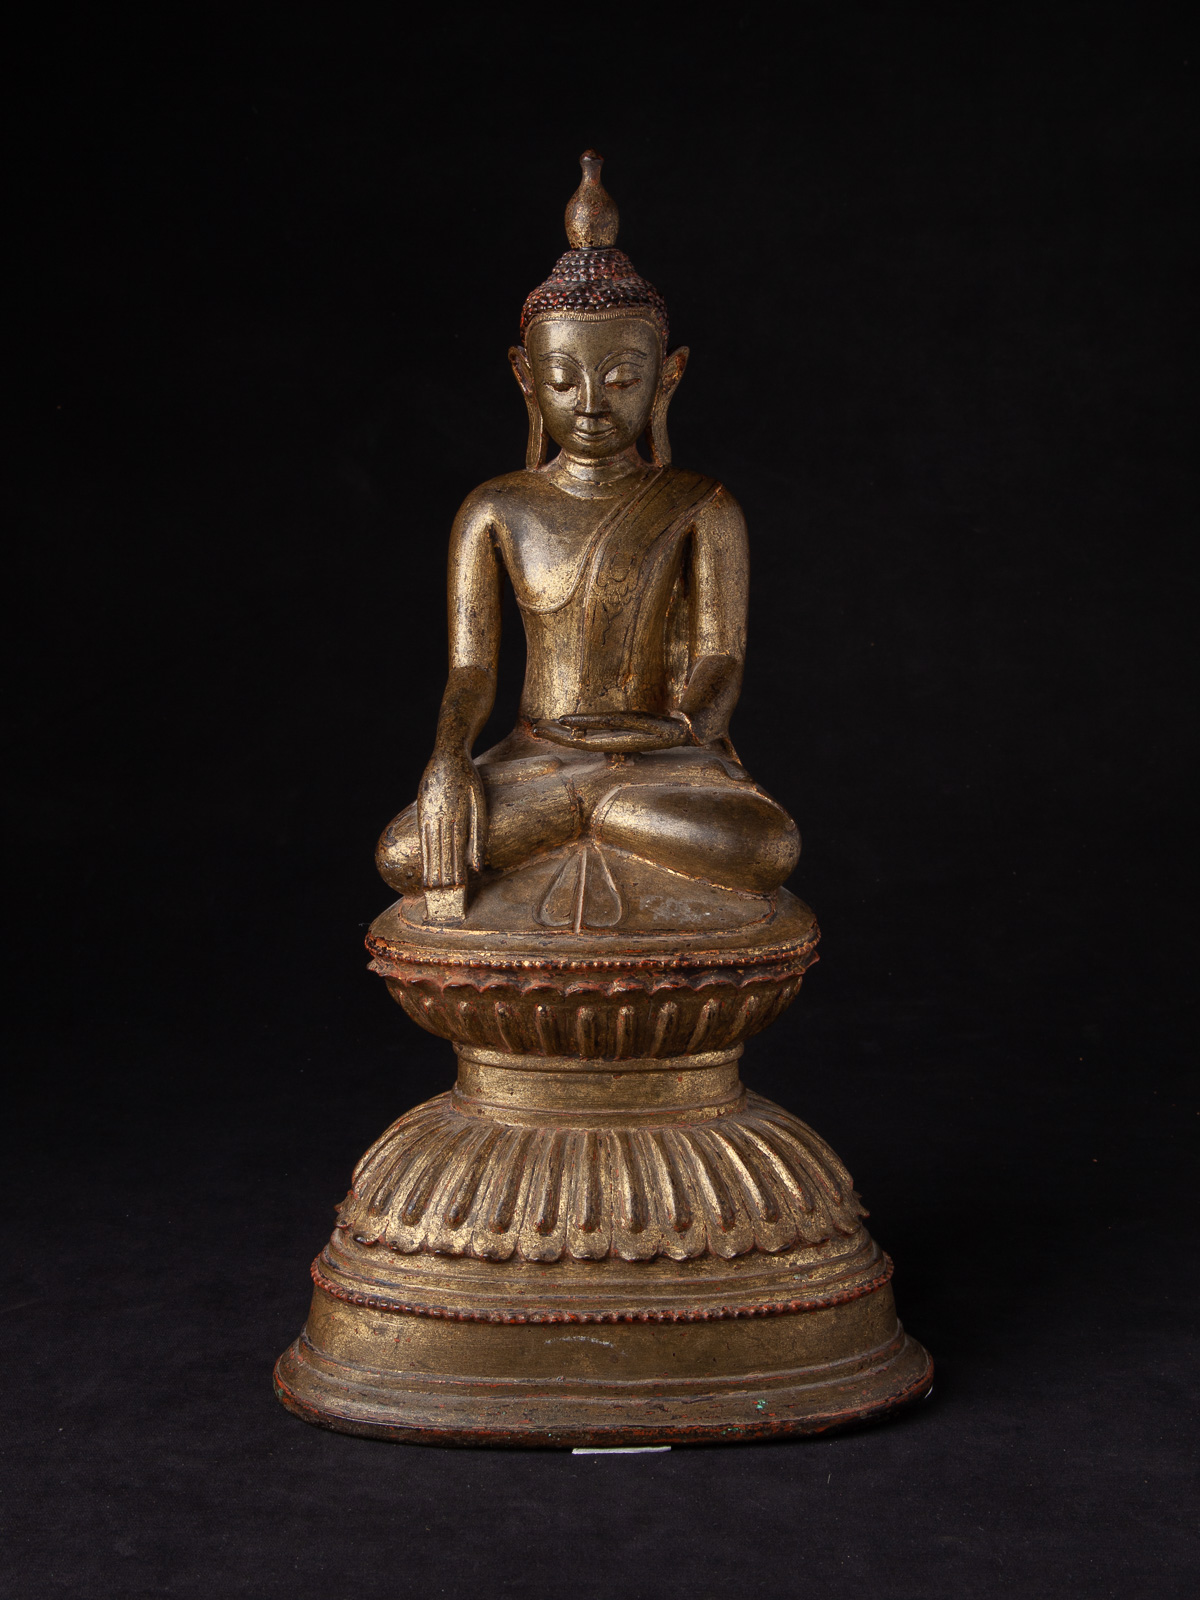 Antique bronze Ava Buddha statue from Burma